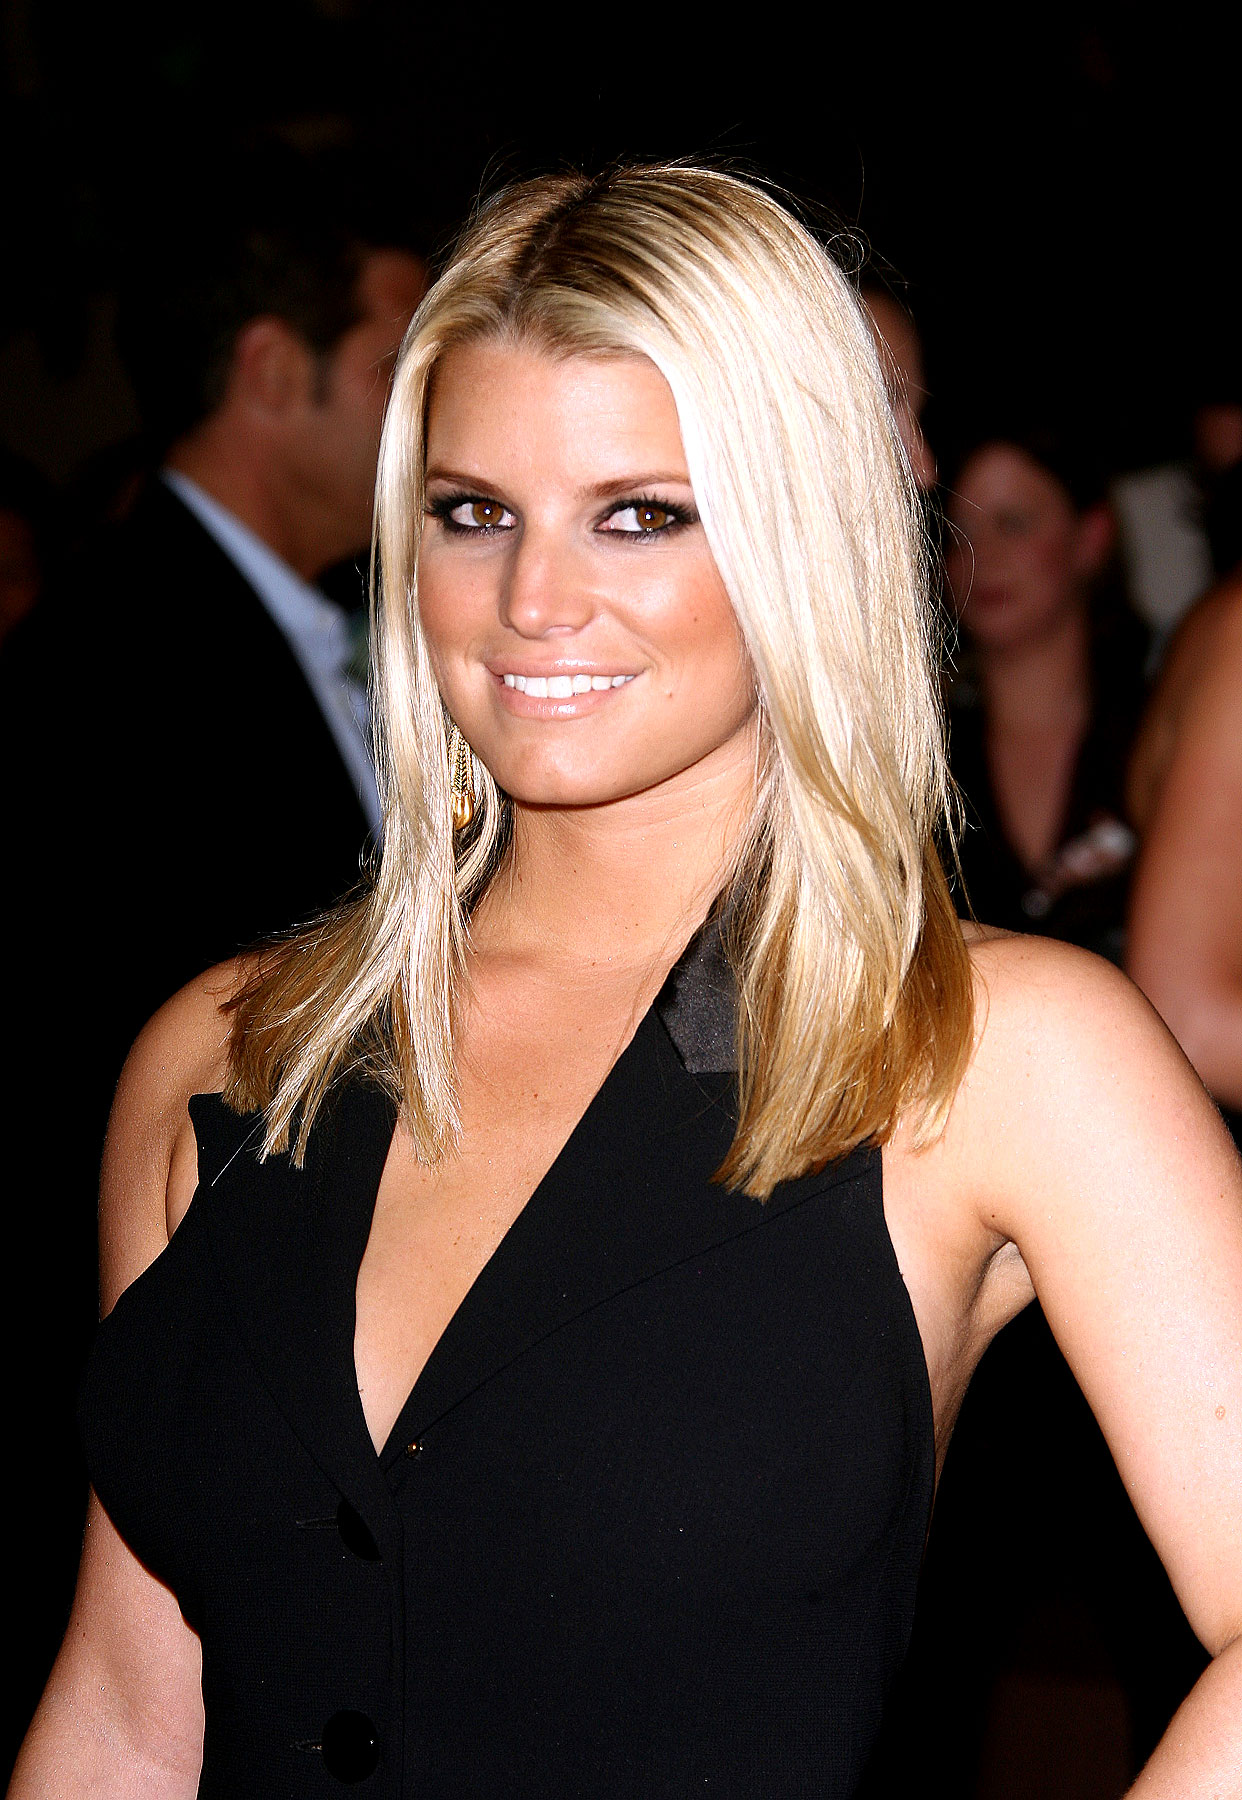 PHOTO GALLERY: Jessica Simpson's Operation Smile